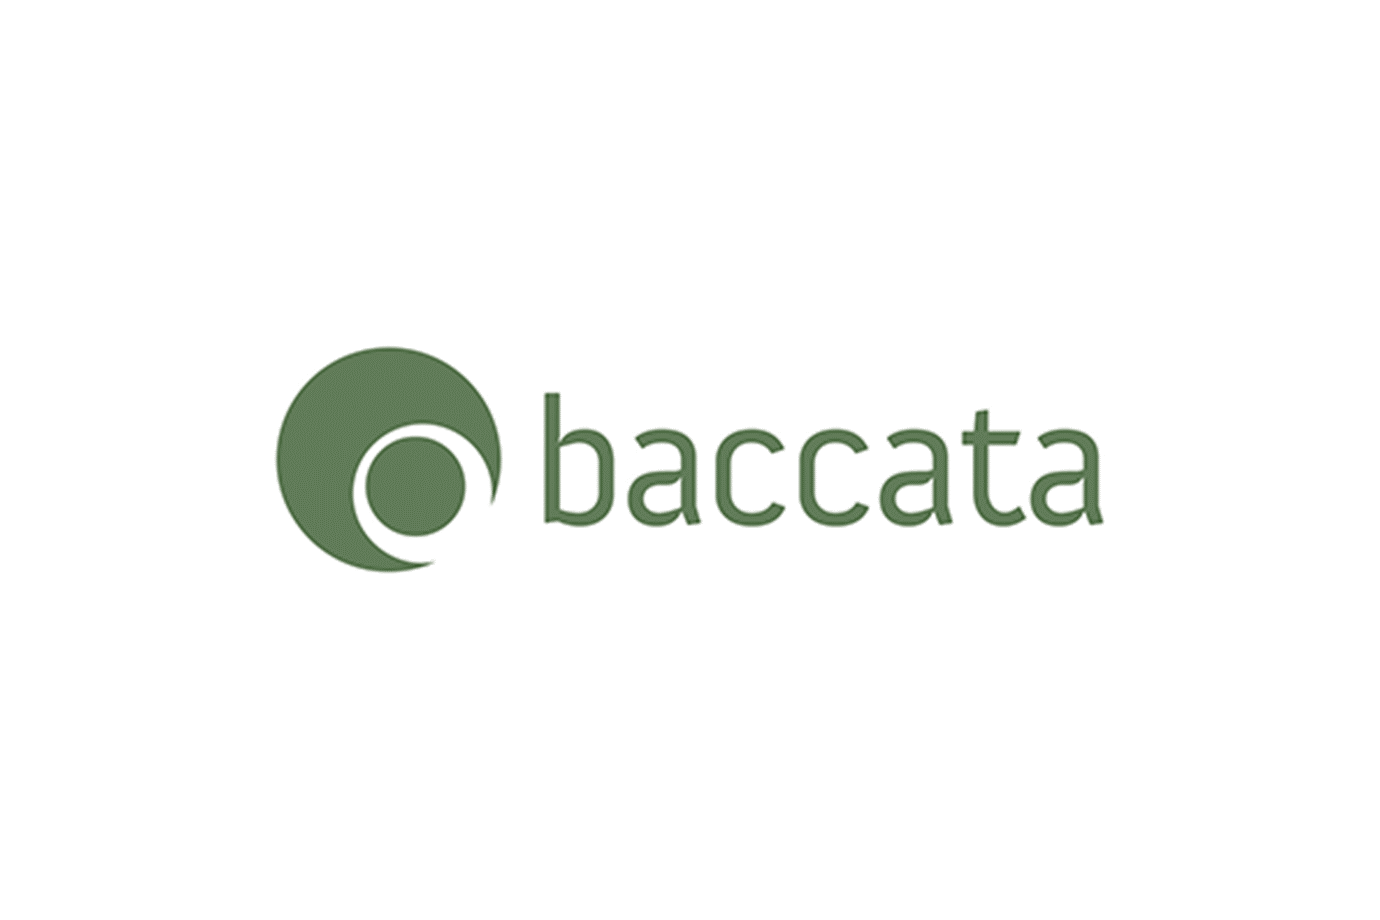 Baccata Trustees Limited